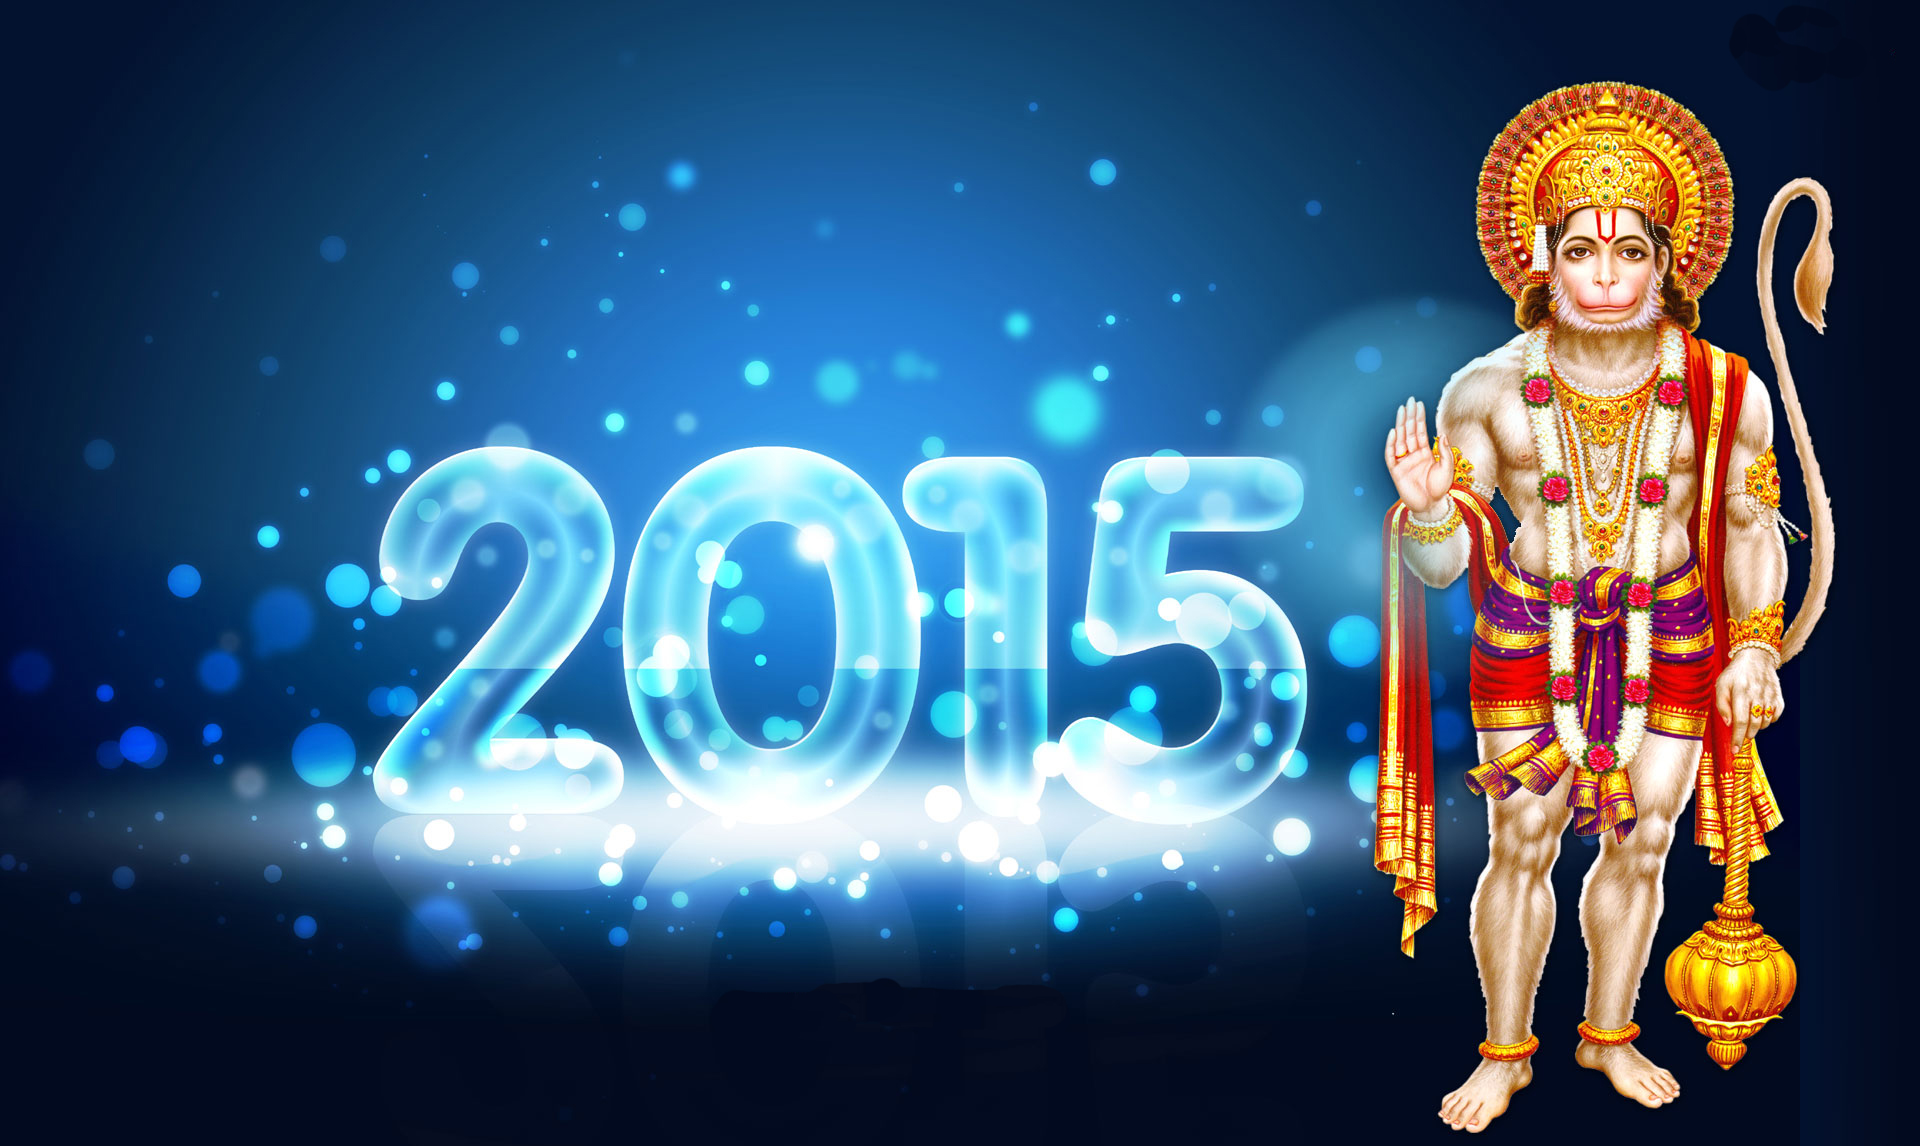 Happy New Year 2015 God Hanuman Images